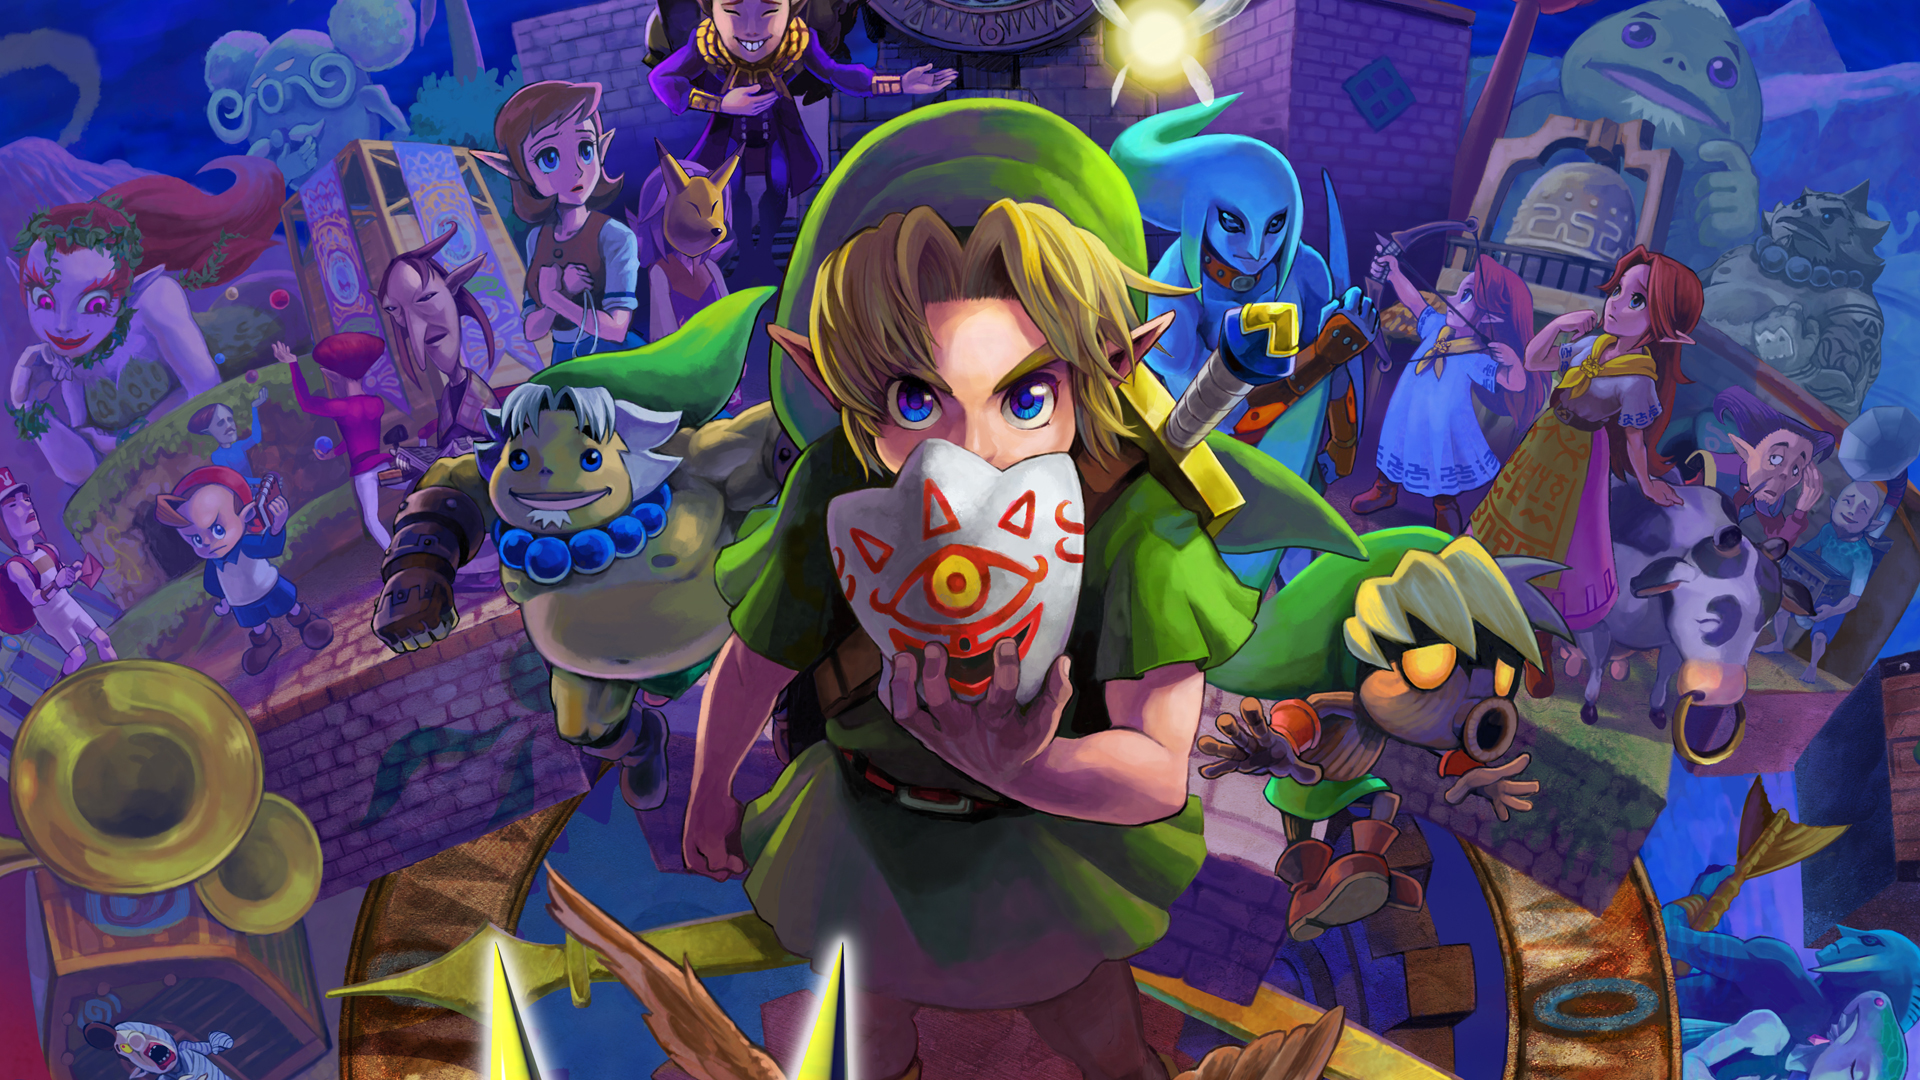 Link and Termina